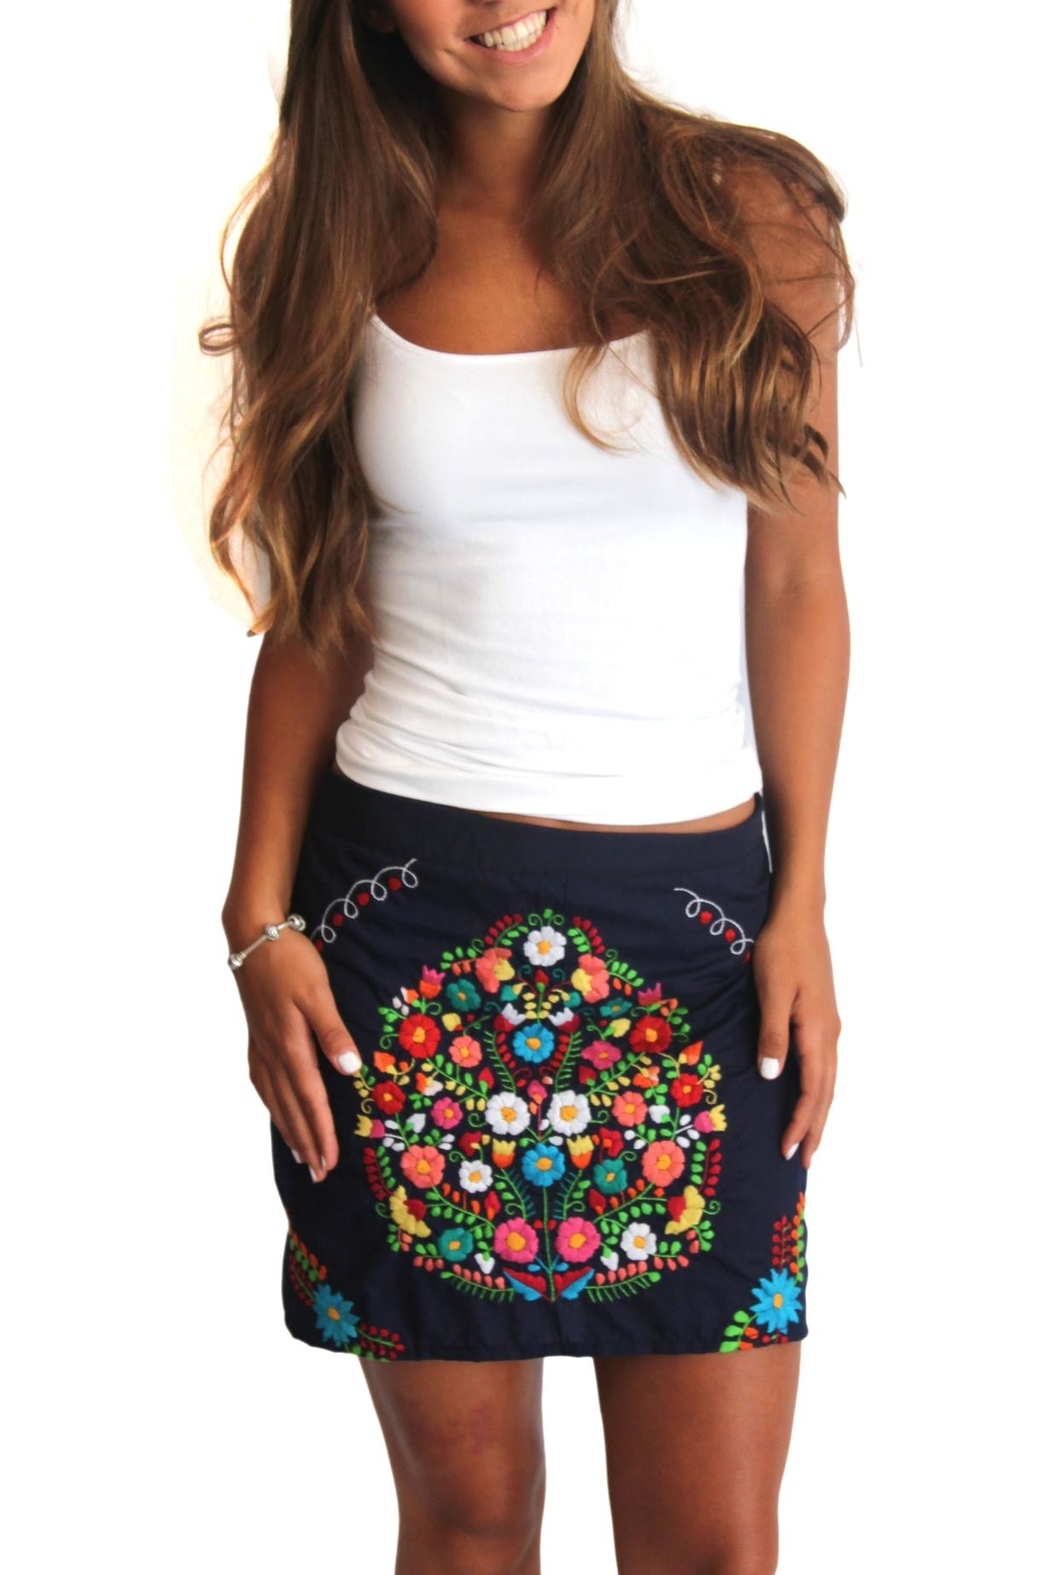 403de0205ac Erica Maree Lia Mini Skirt from Mexico by Eclectic Array — Shoptiques